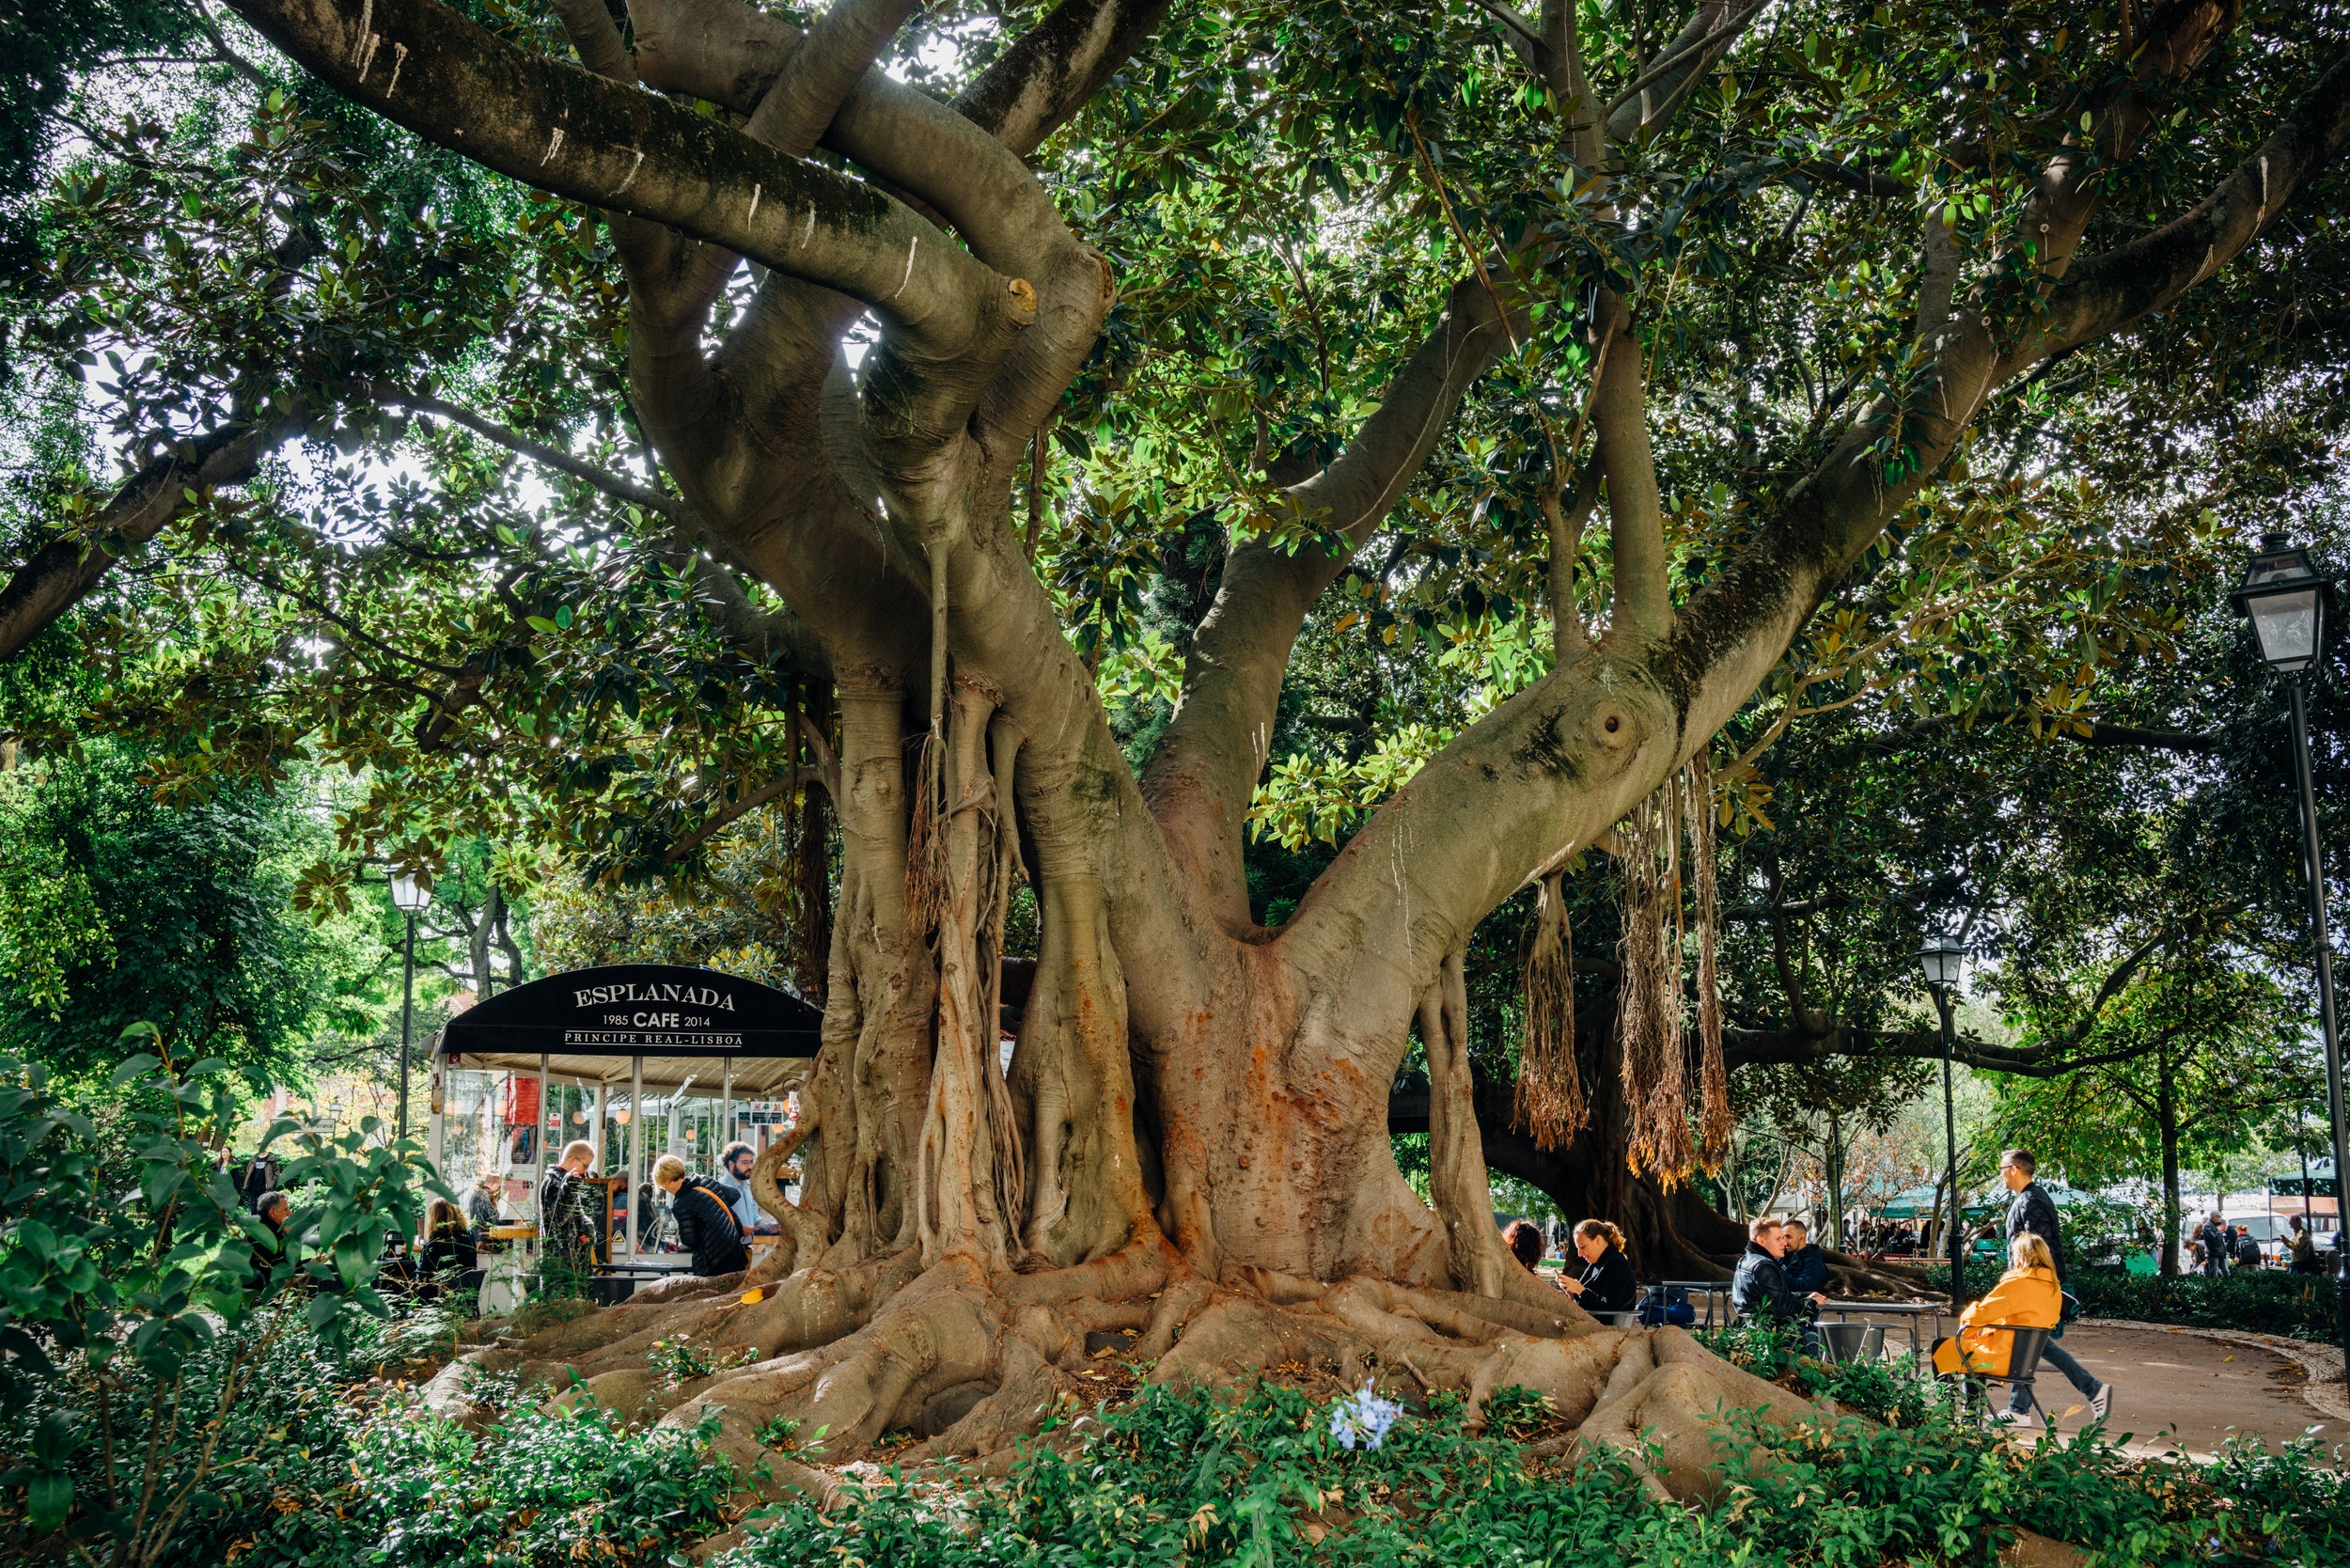 Ficus macrophylla , or the Moreton Bay fig is relatively common in Lisbon . This beauty is seen in Jardim do Príncipe Real, in the lovely Príncipe Real neighborhood.